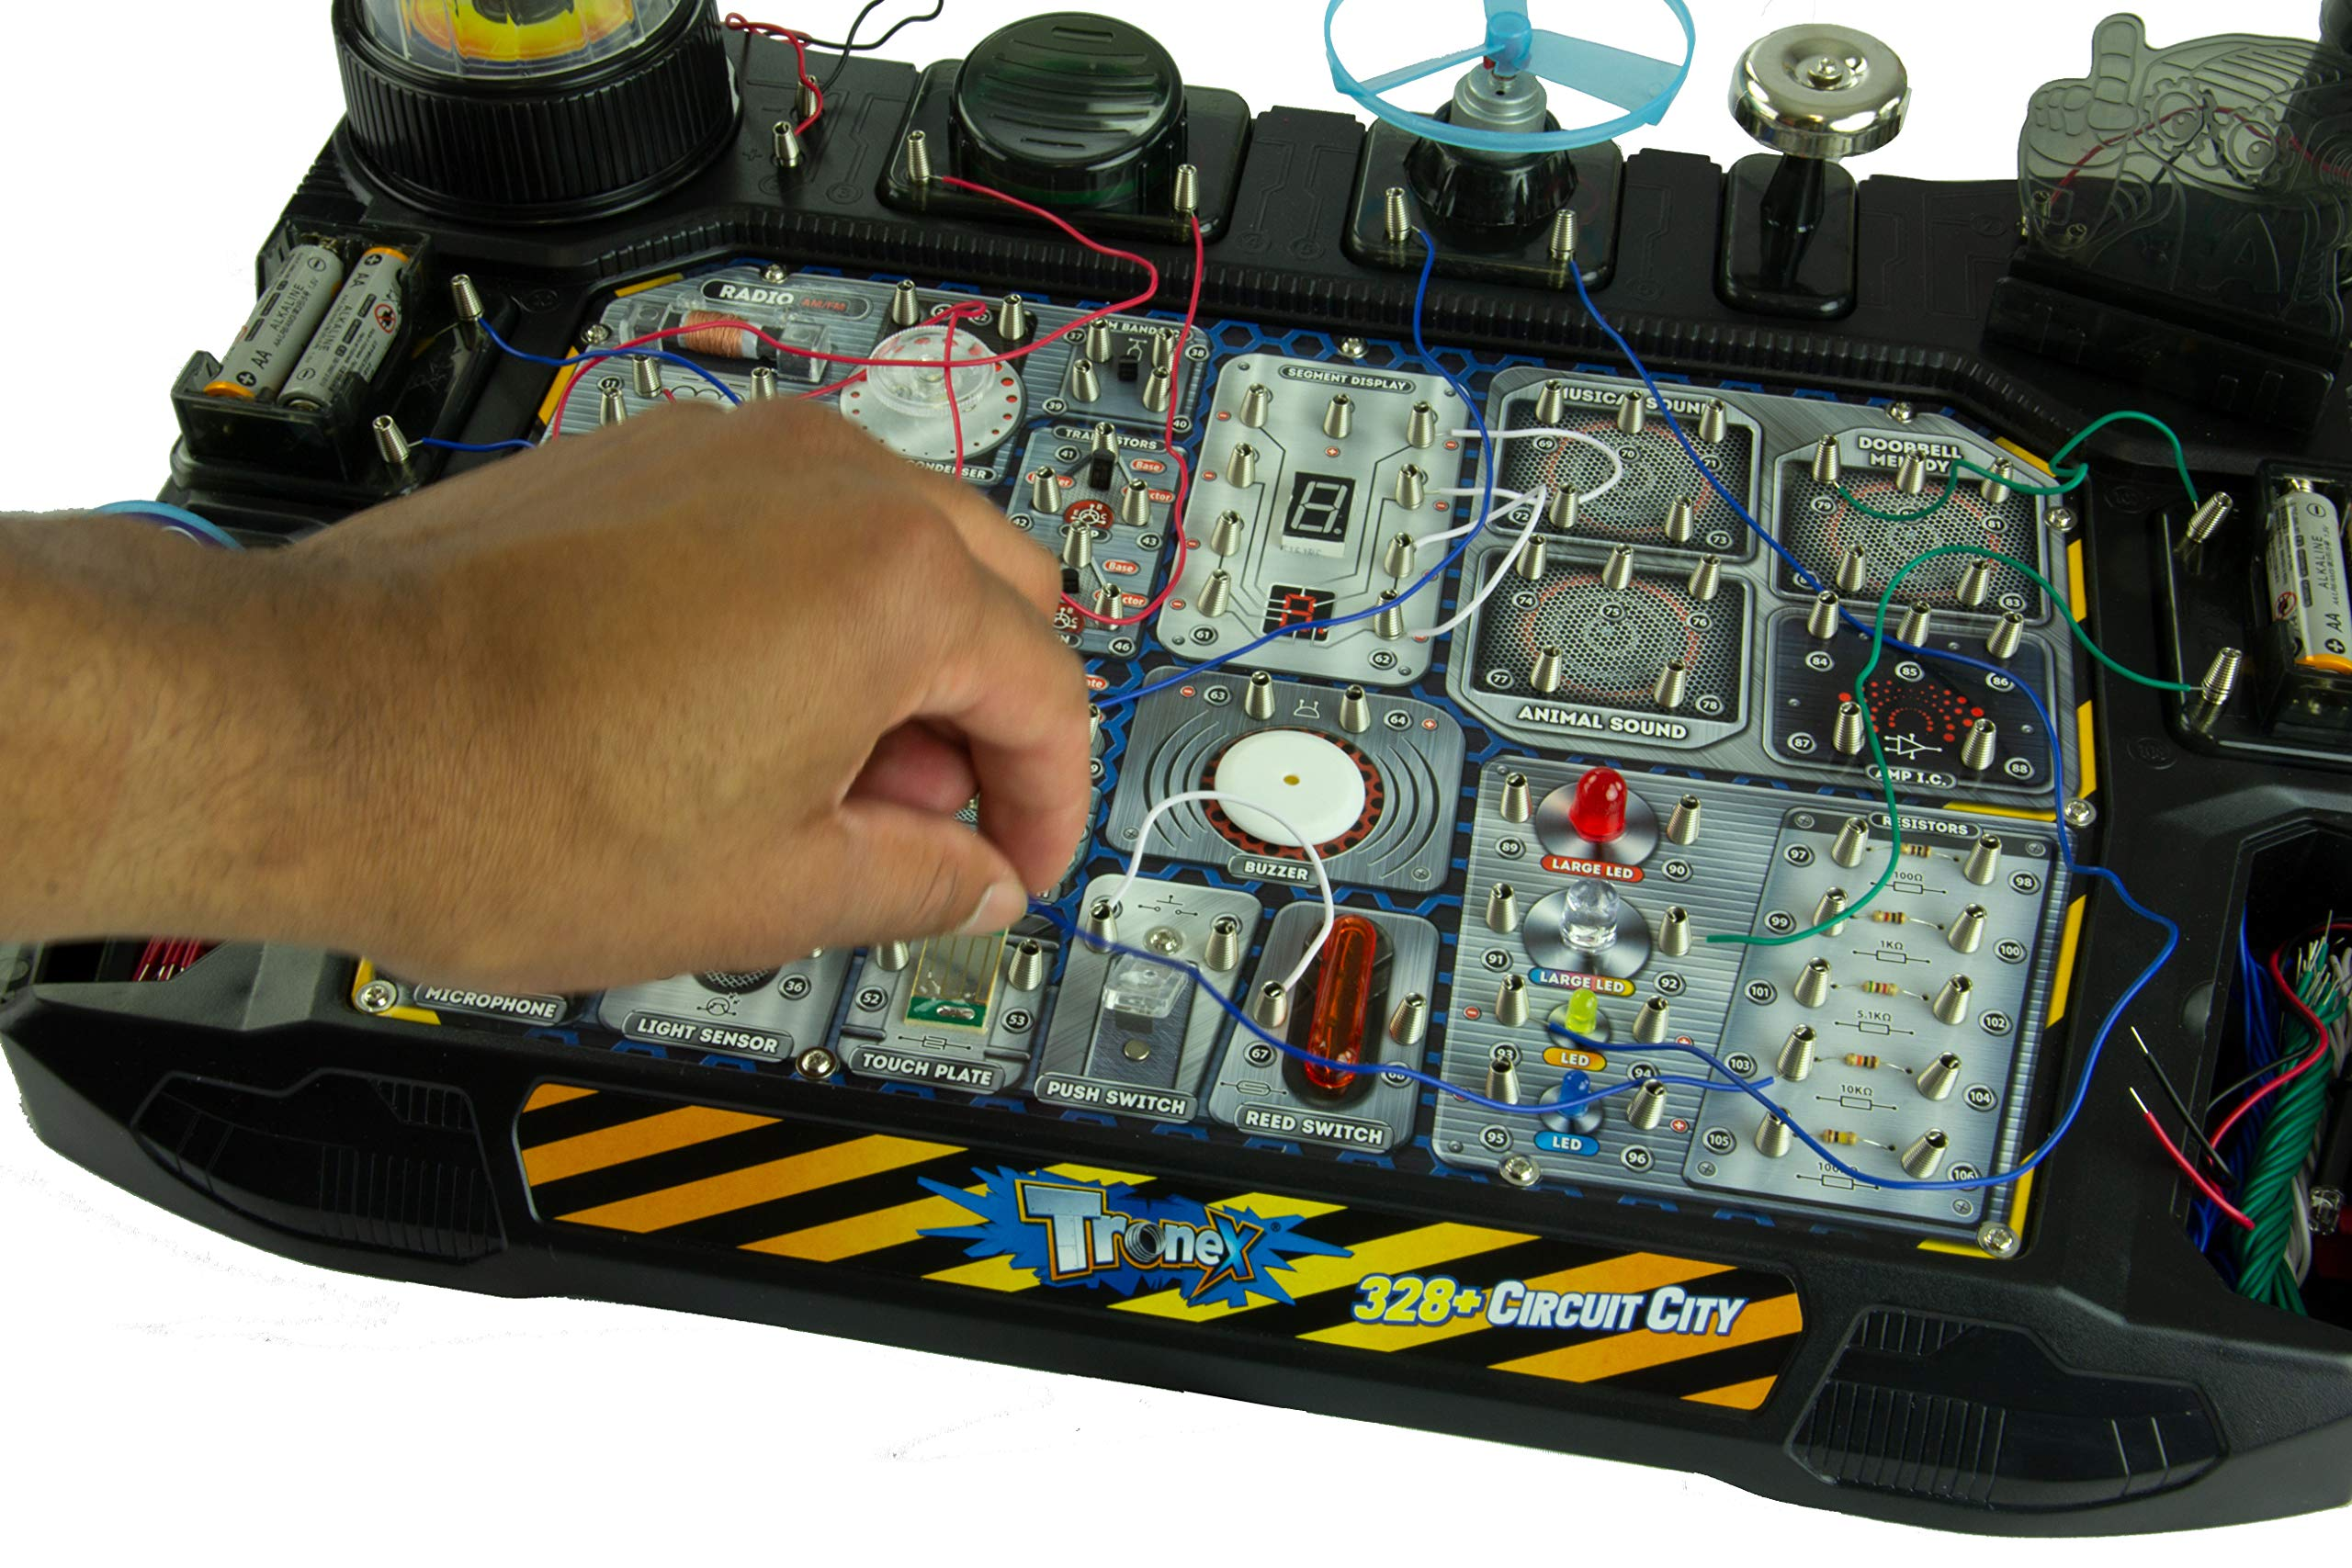 Tronex Circuit City | Over 328 STEM Projects | Educational Circuit Board Toy